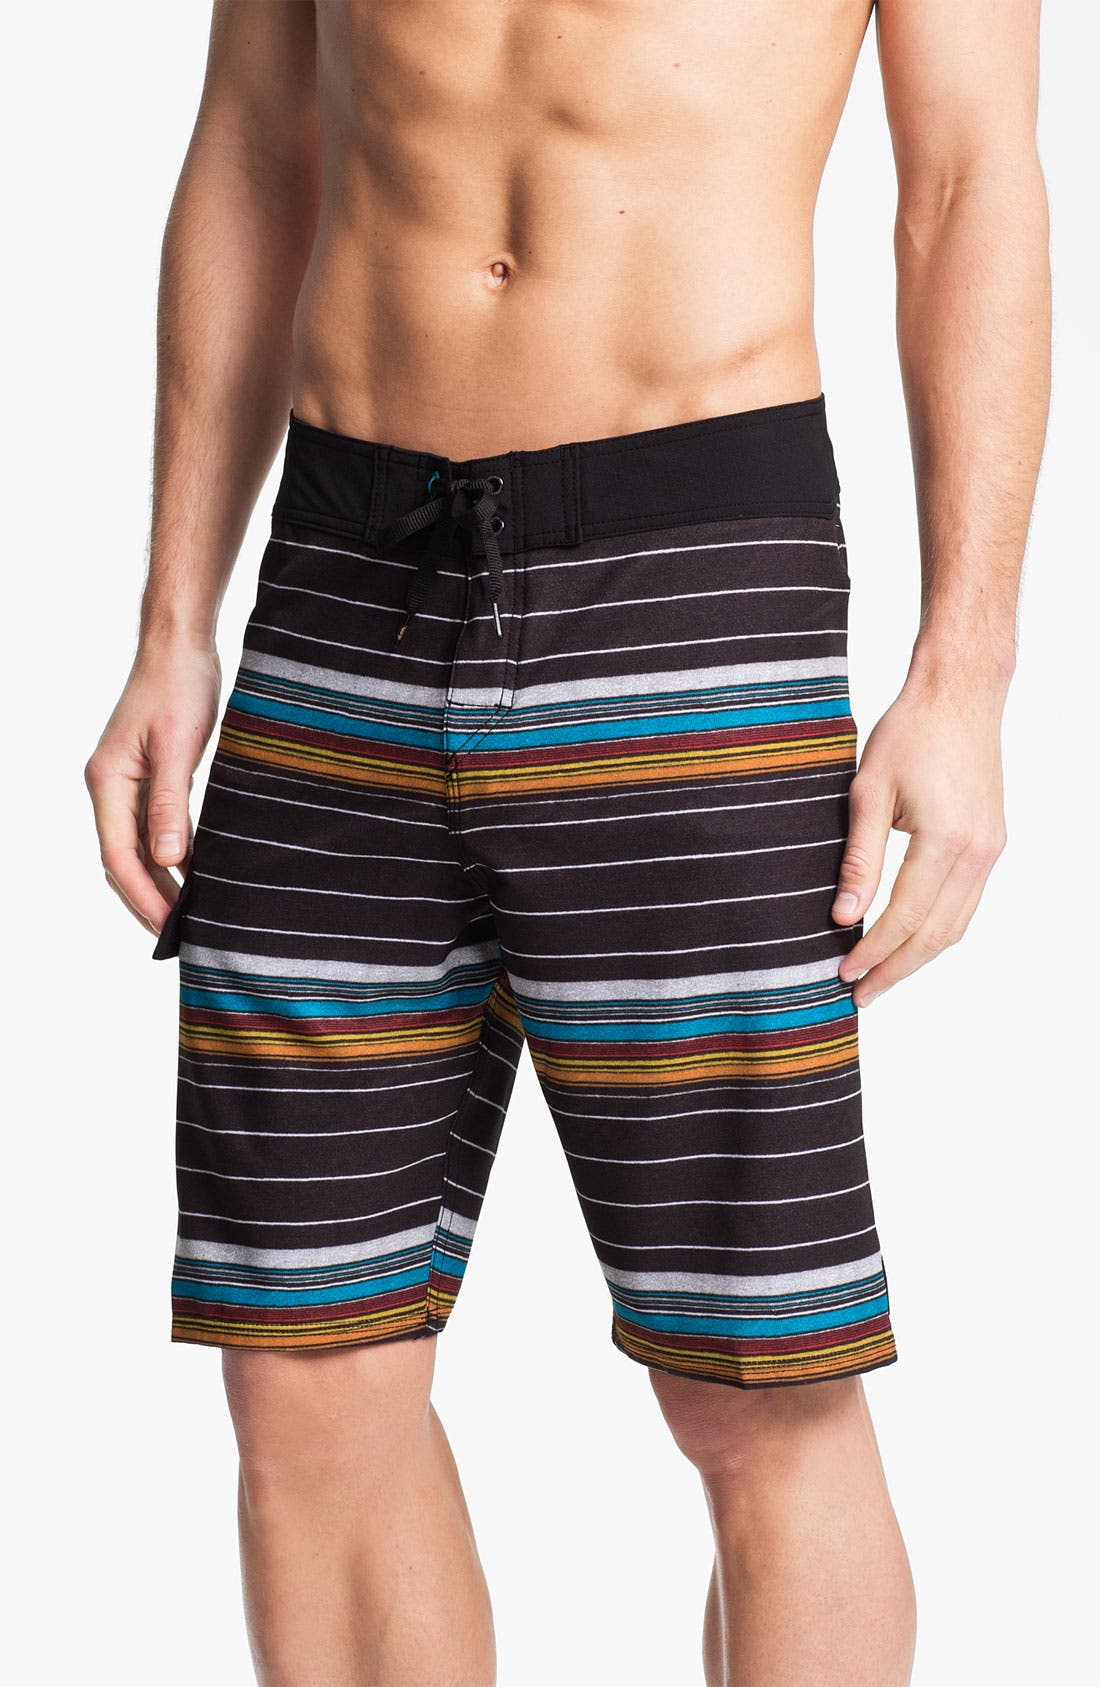 Alternate Image 1 Selected - Quiksilver 'Suit Up' Board Shorts (Online Exclusive)